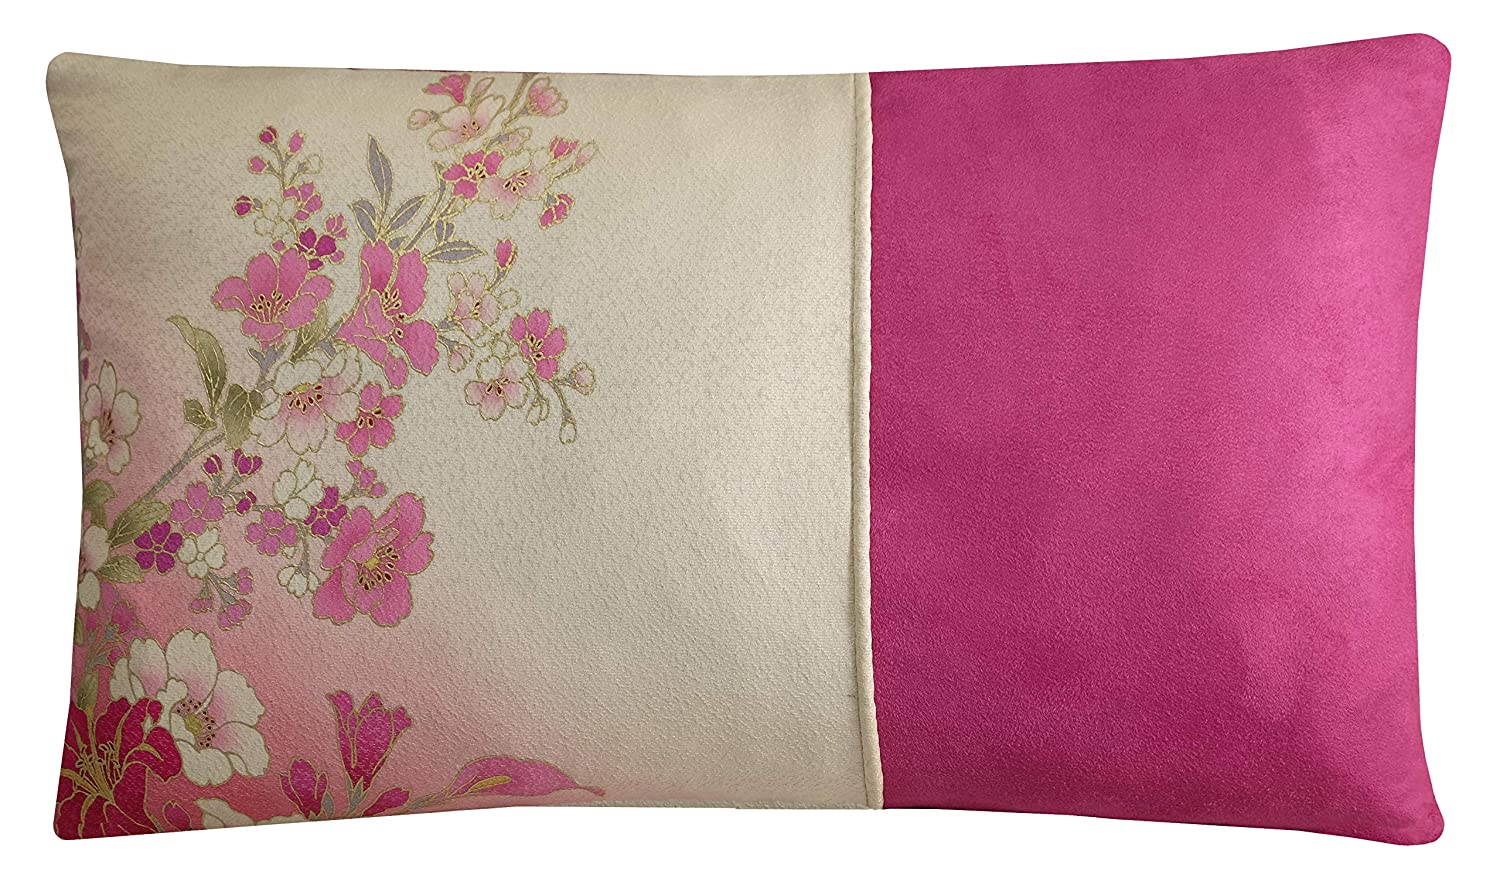 Floral Lumbar Cushion Cerise Pink And White Pillow Cover 30x50cm Amazon Co Uk Handmade